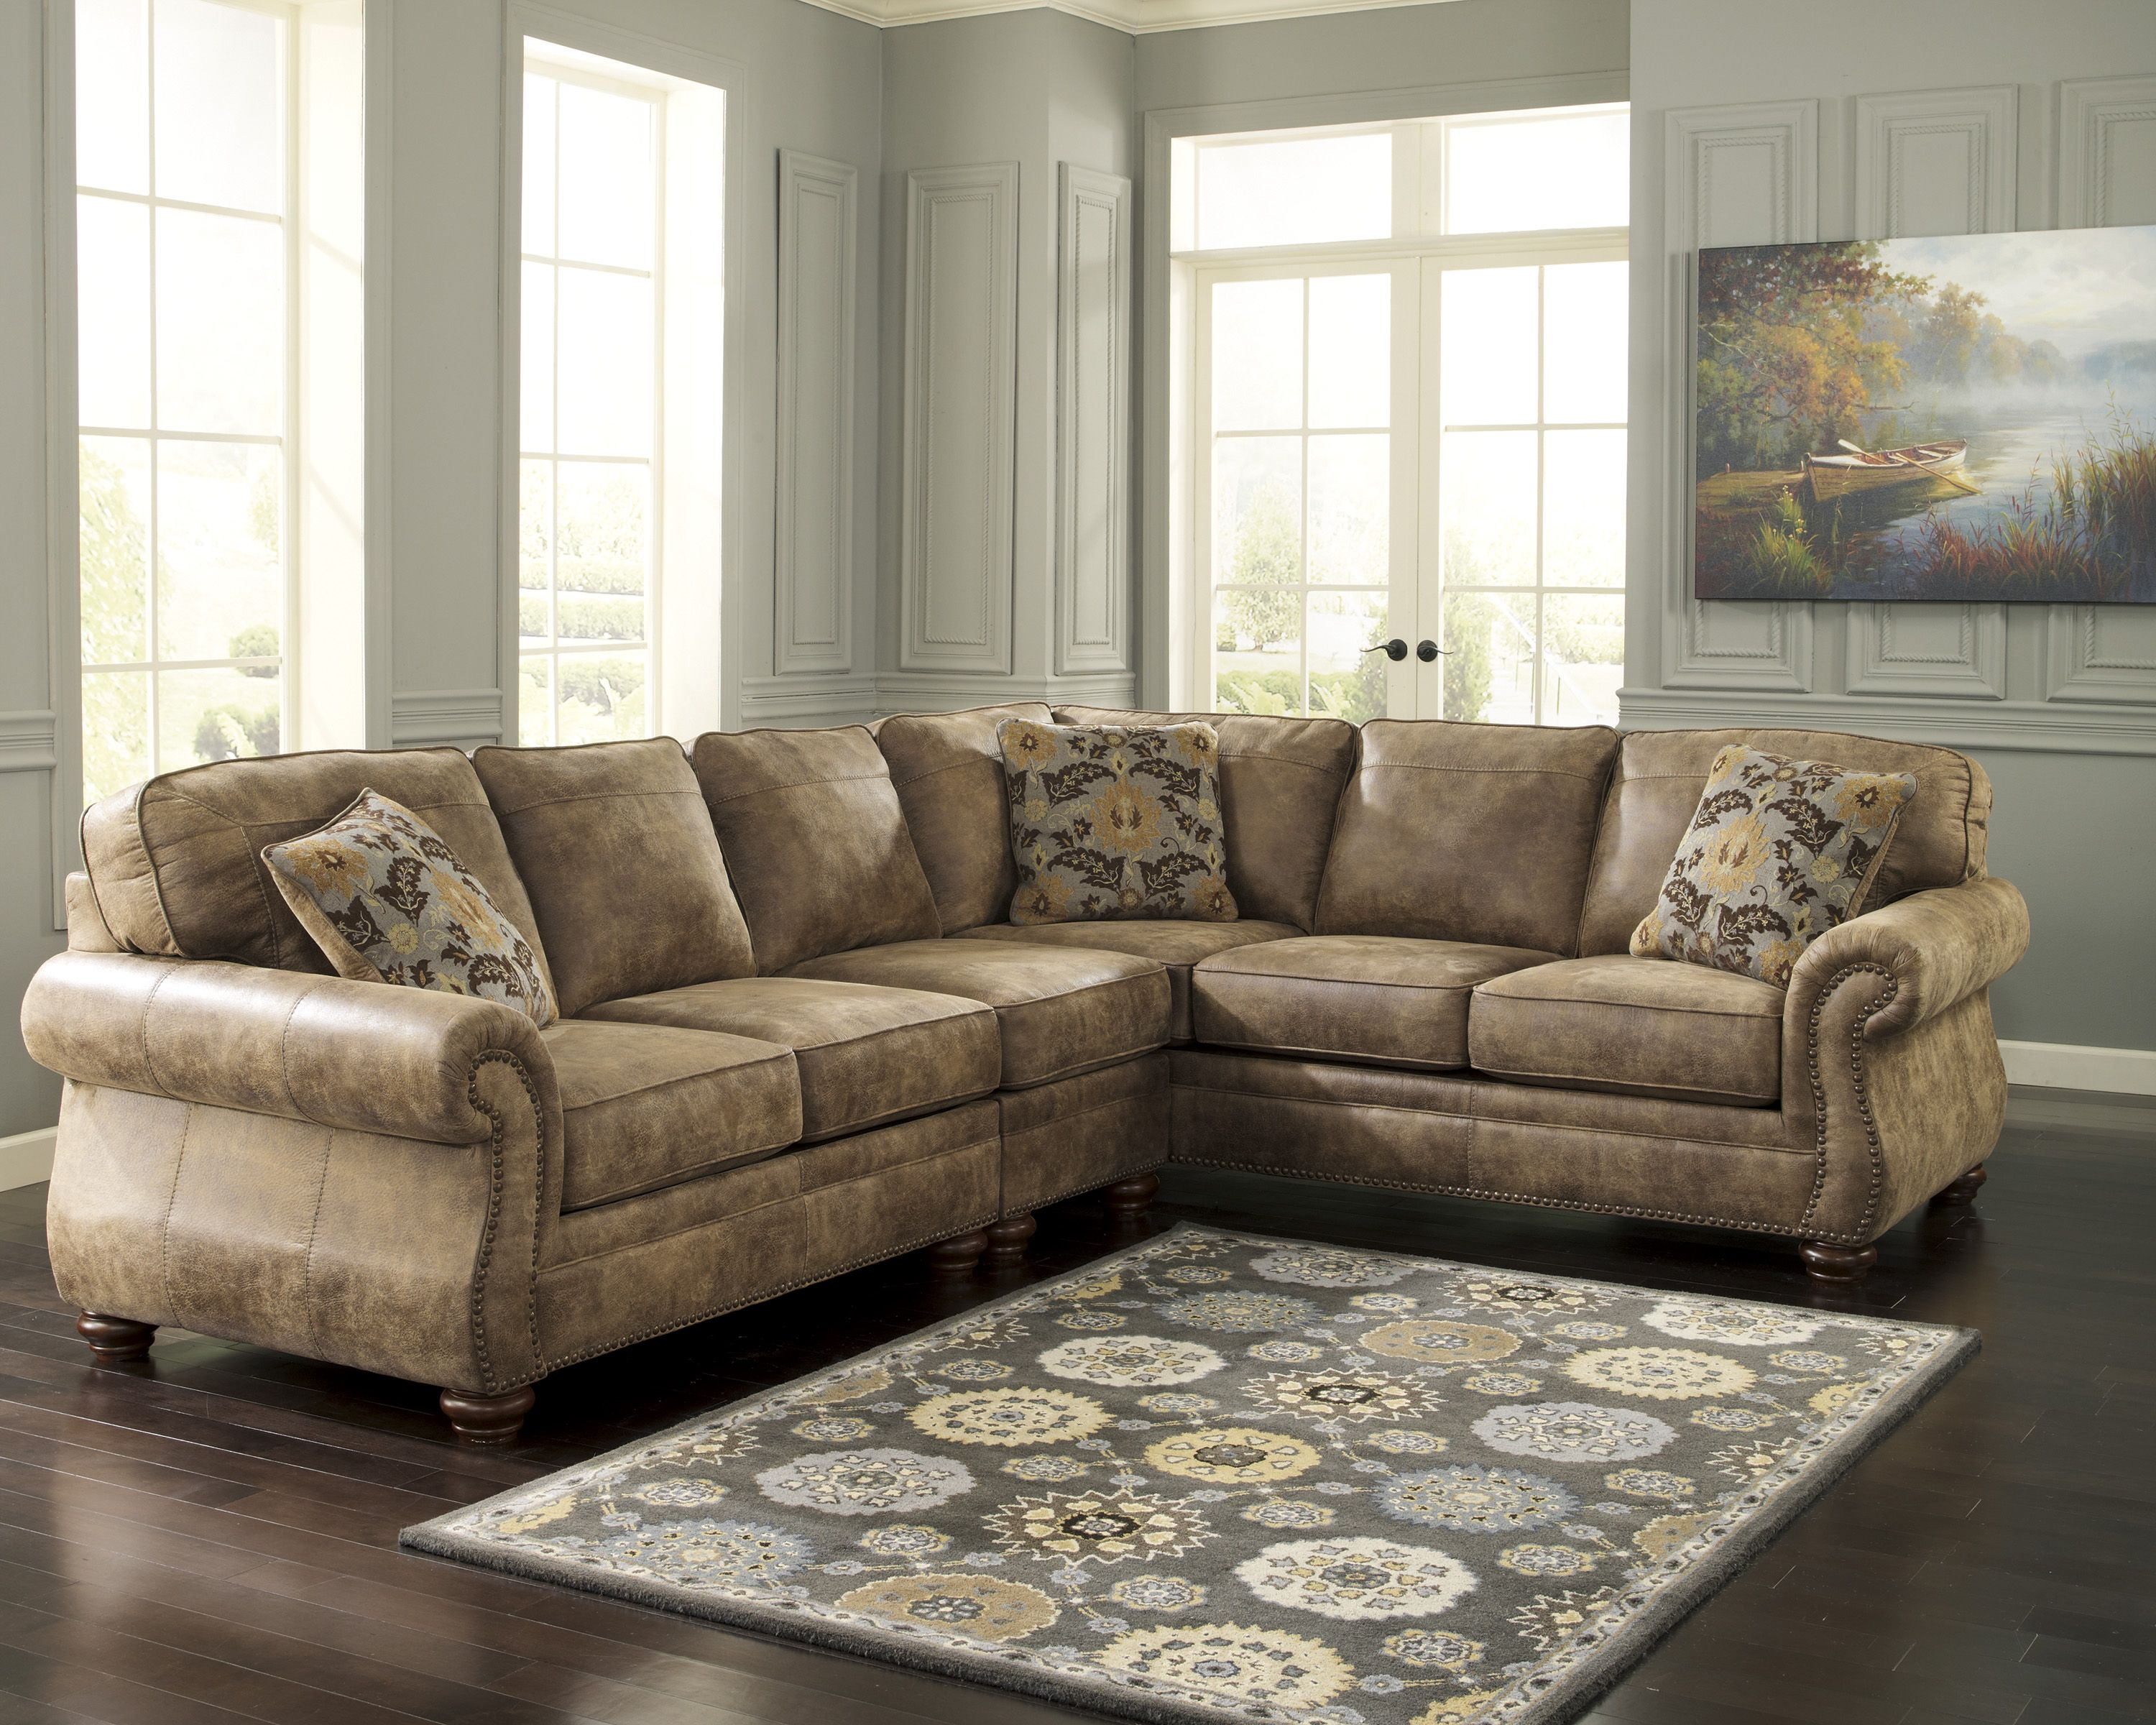 Ashley 319 Living Room Furniture Layout Living Room Sectional Furniture Layout